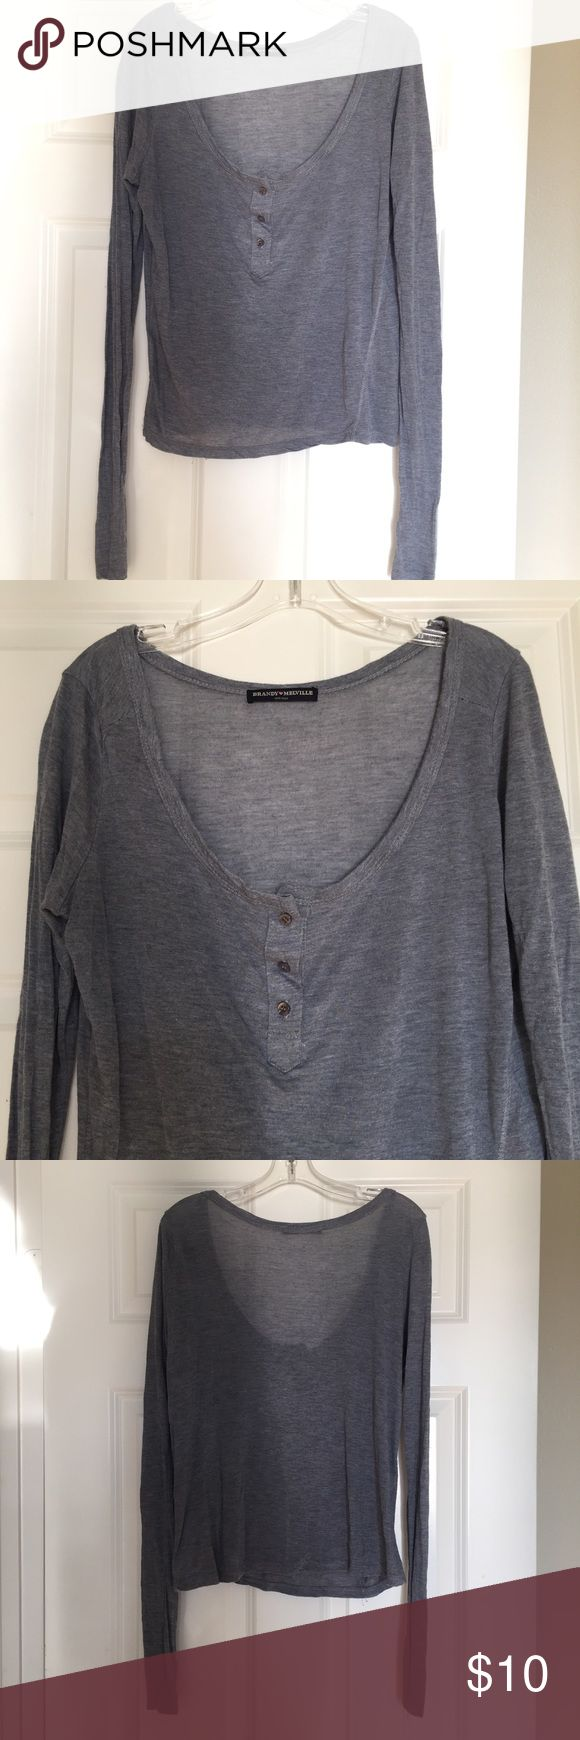 long sleeve Brandy Melville top This is a blueish/grey scoop neck long sleeve. It has three cute buttons. Very thin fabric. Very cozy fabric. Brandy Melville Tops Tees - Long Sleeve